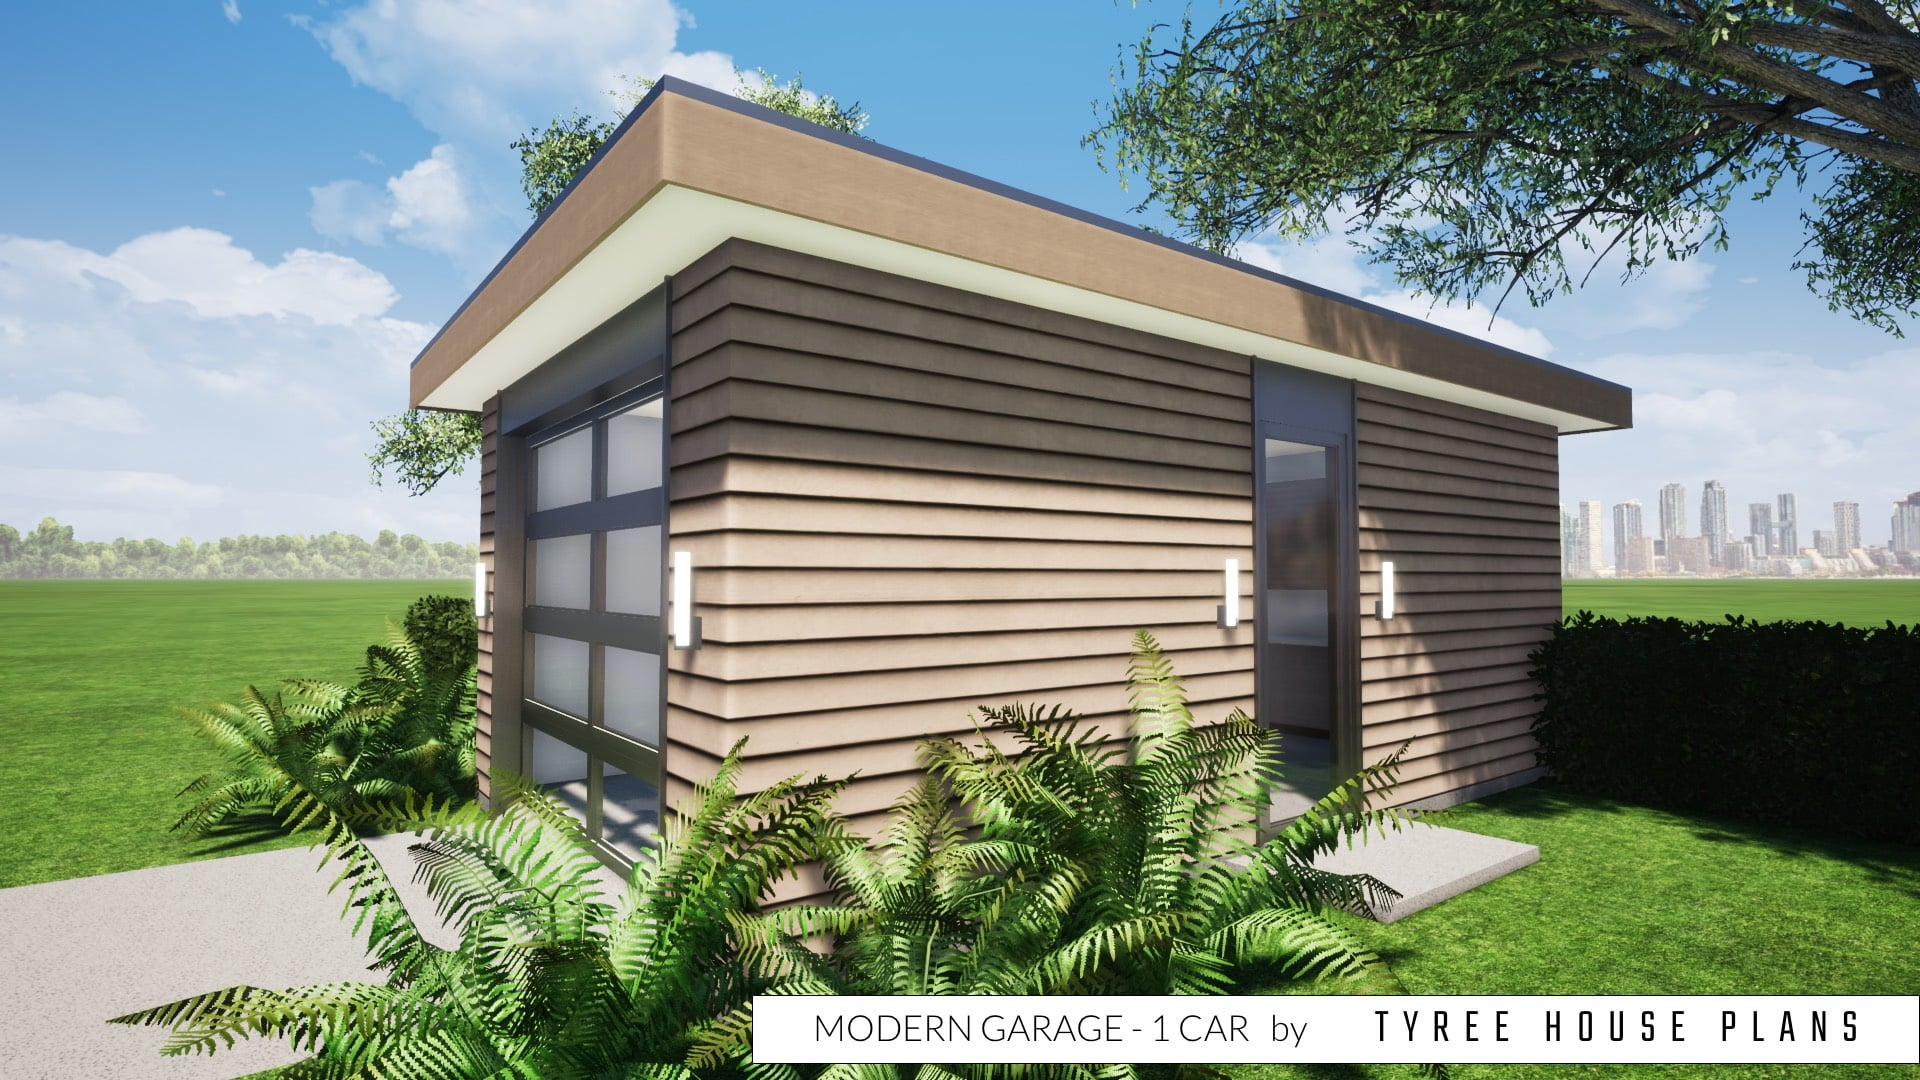 Modern Garage - 1 Car by Tyree House Plans